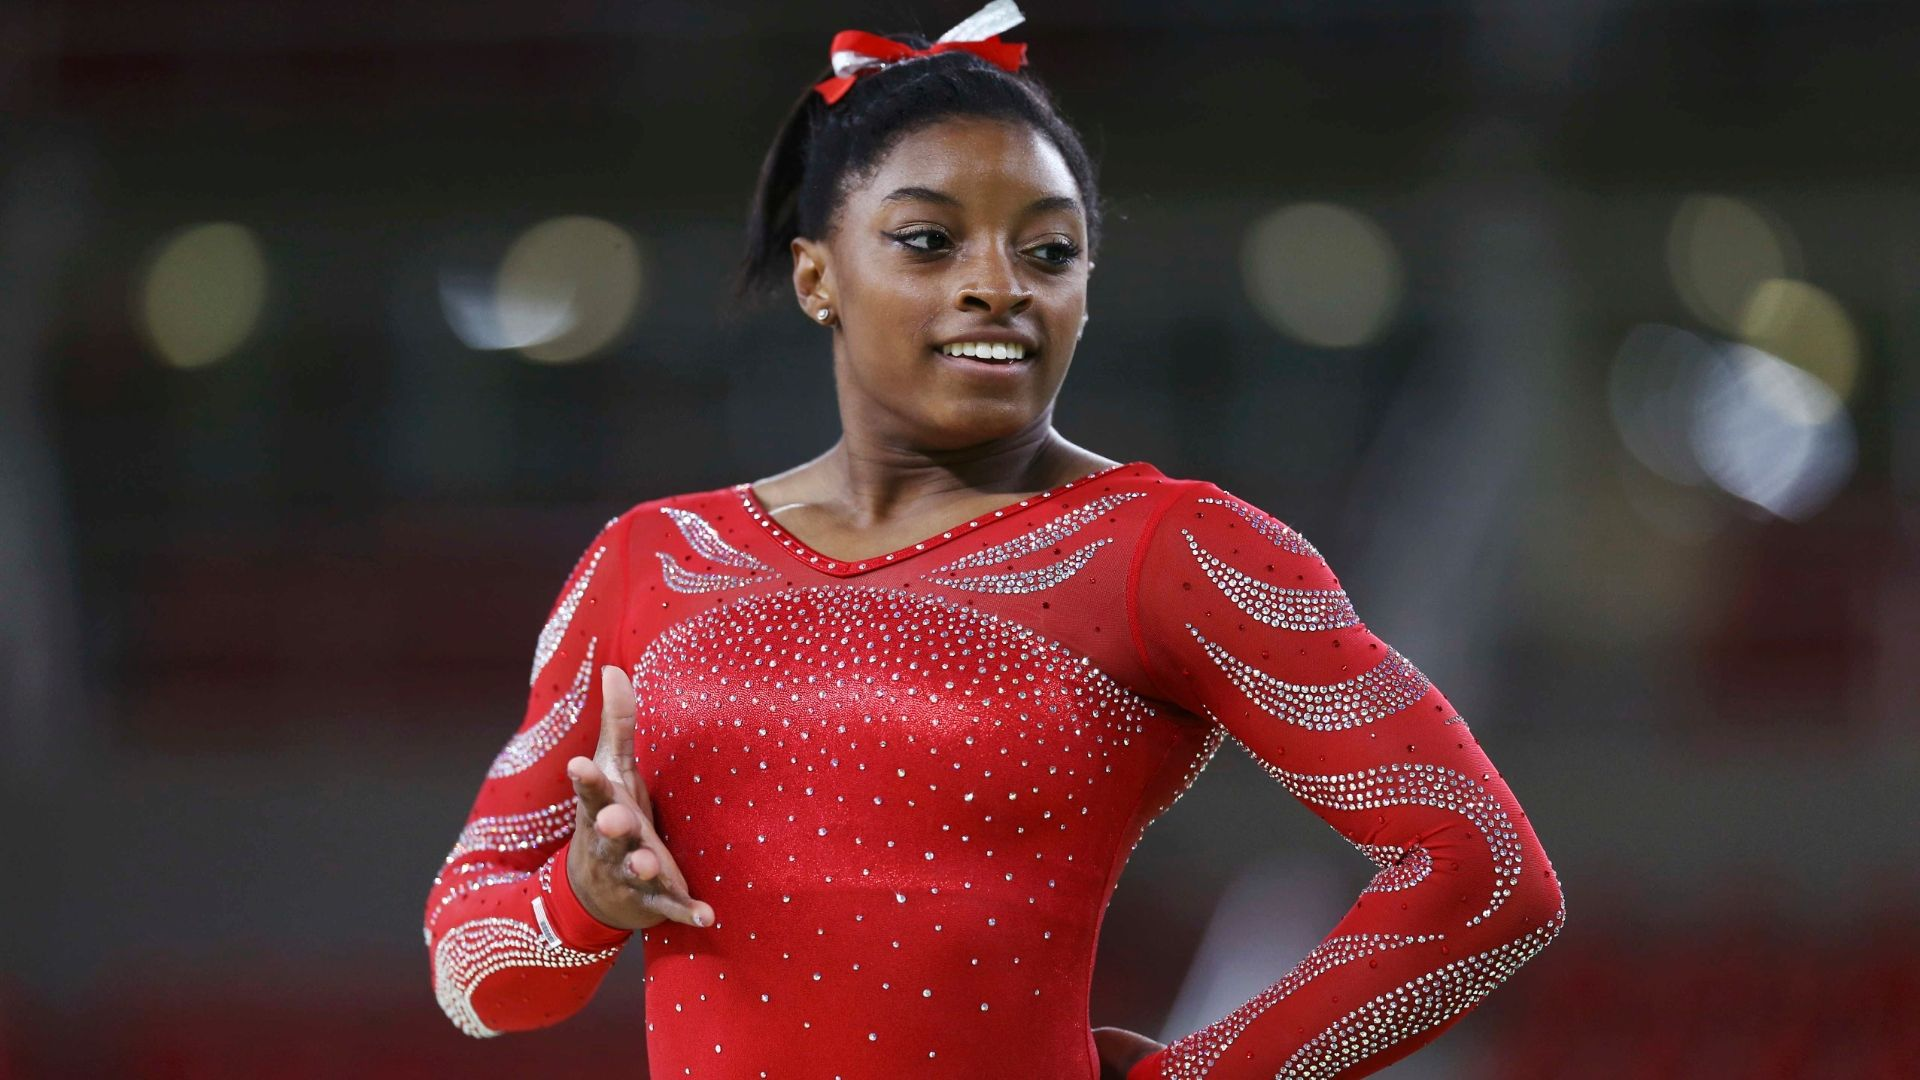 Simone Biles' journey to world's best gymnast